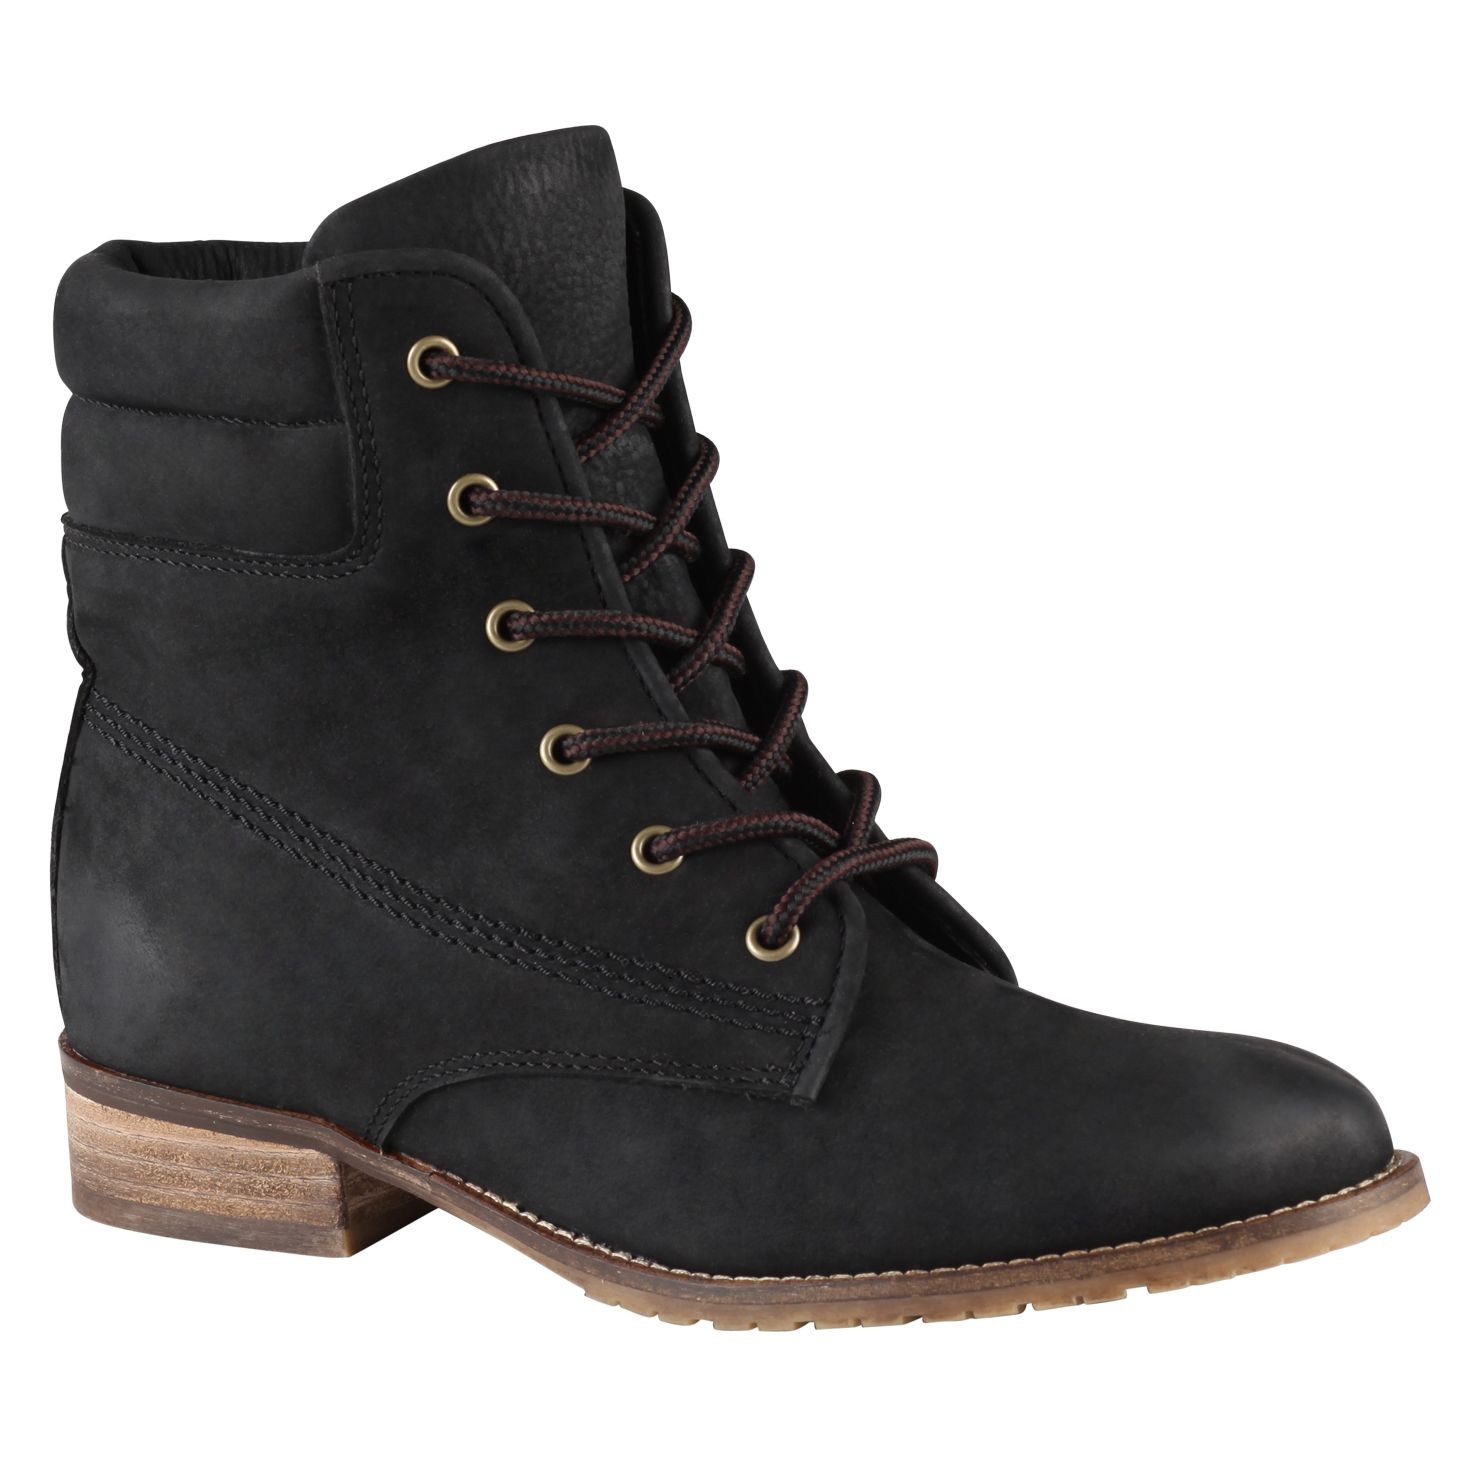 Sulkova lace up ankle boots